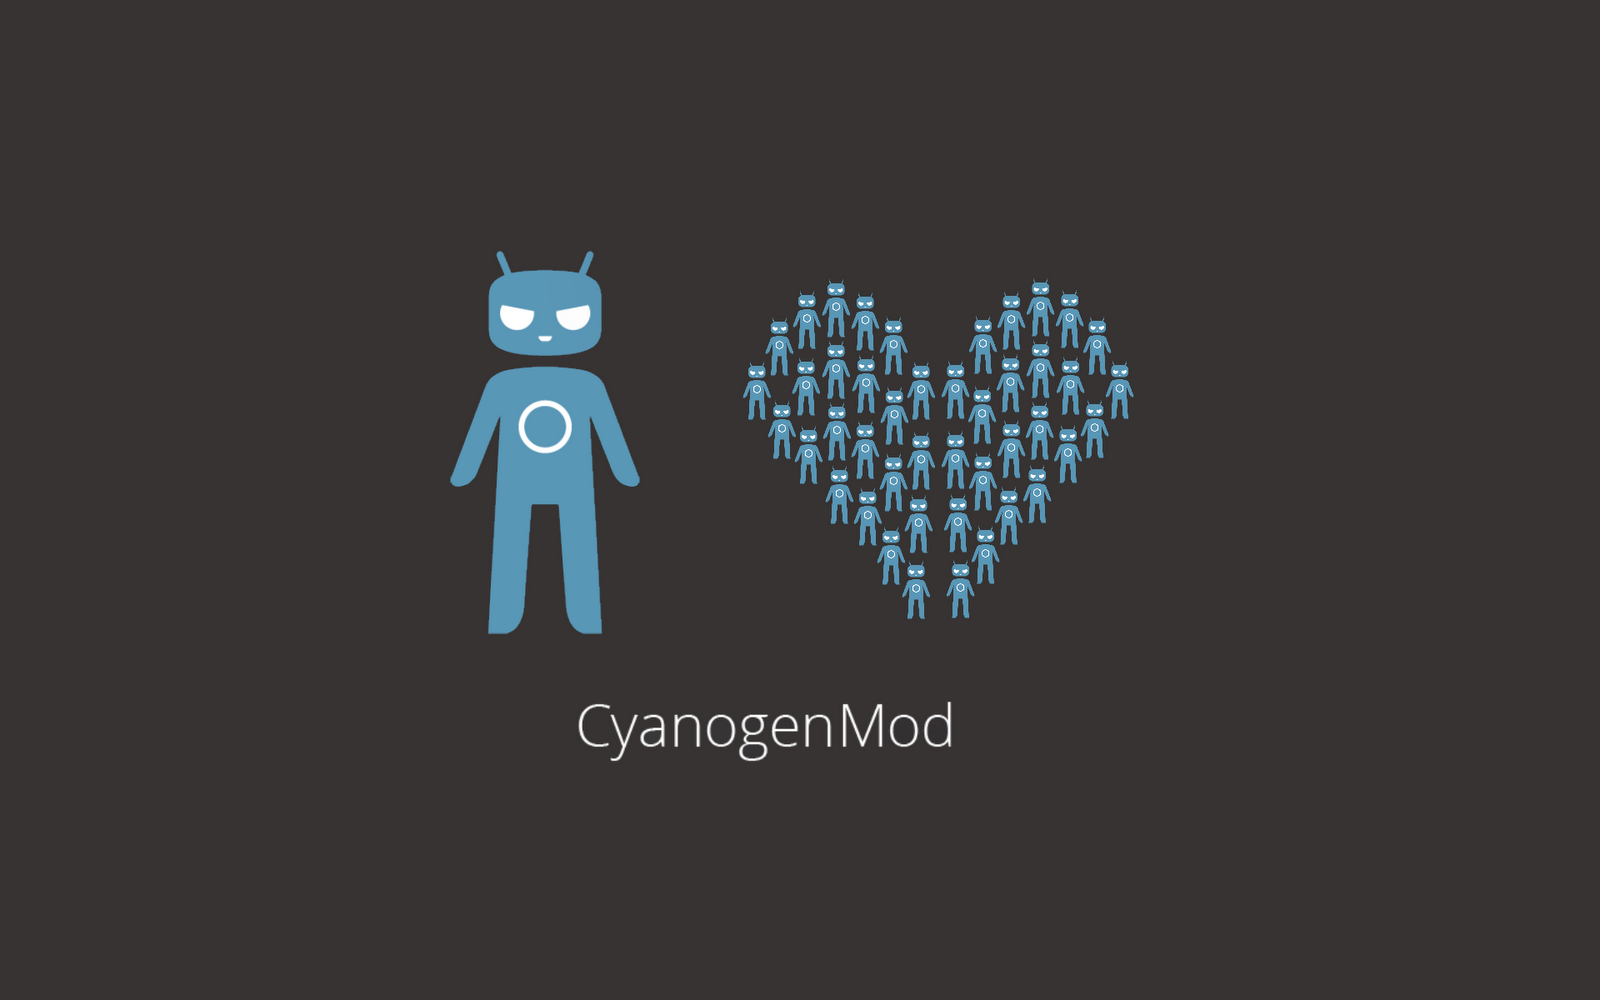 Next CyanogenMod Update Will Include Incognito Mode for All Apps